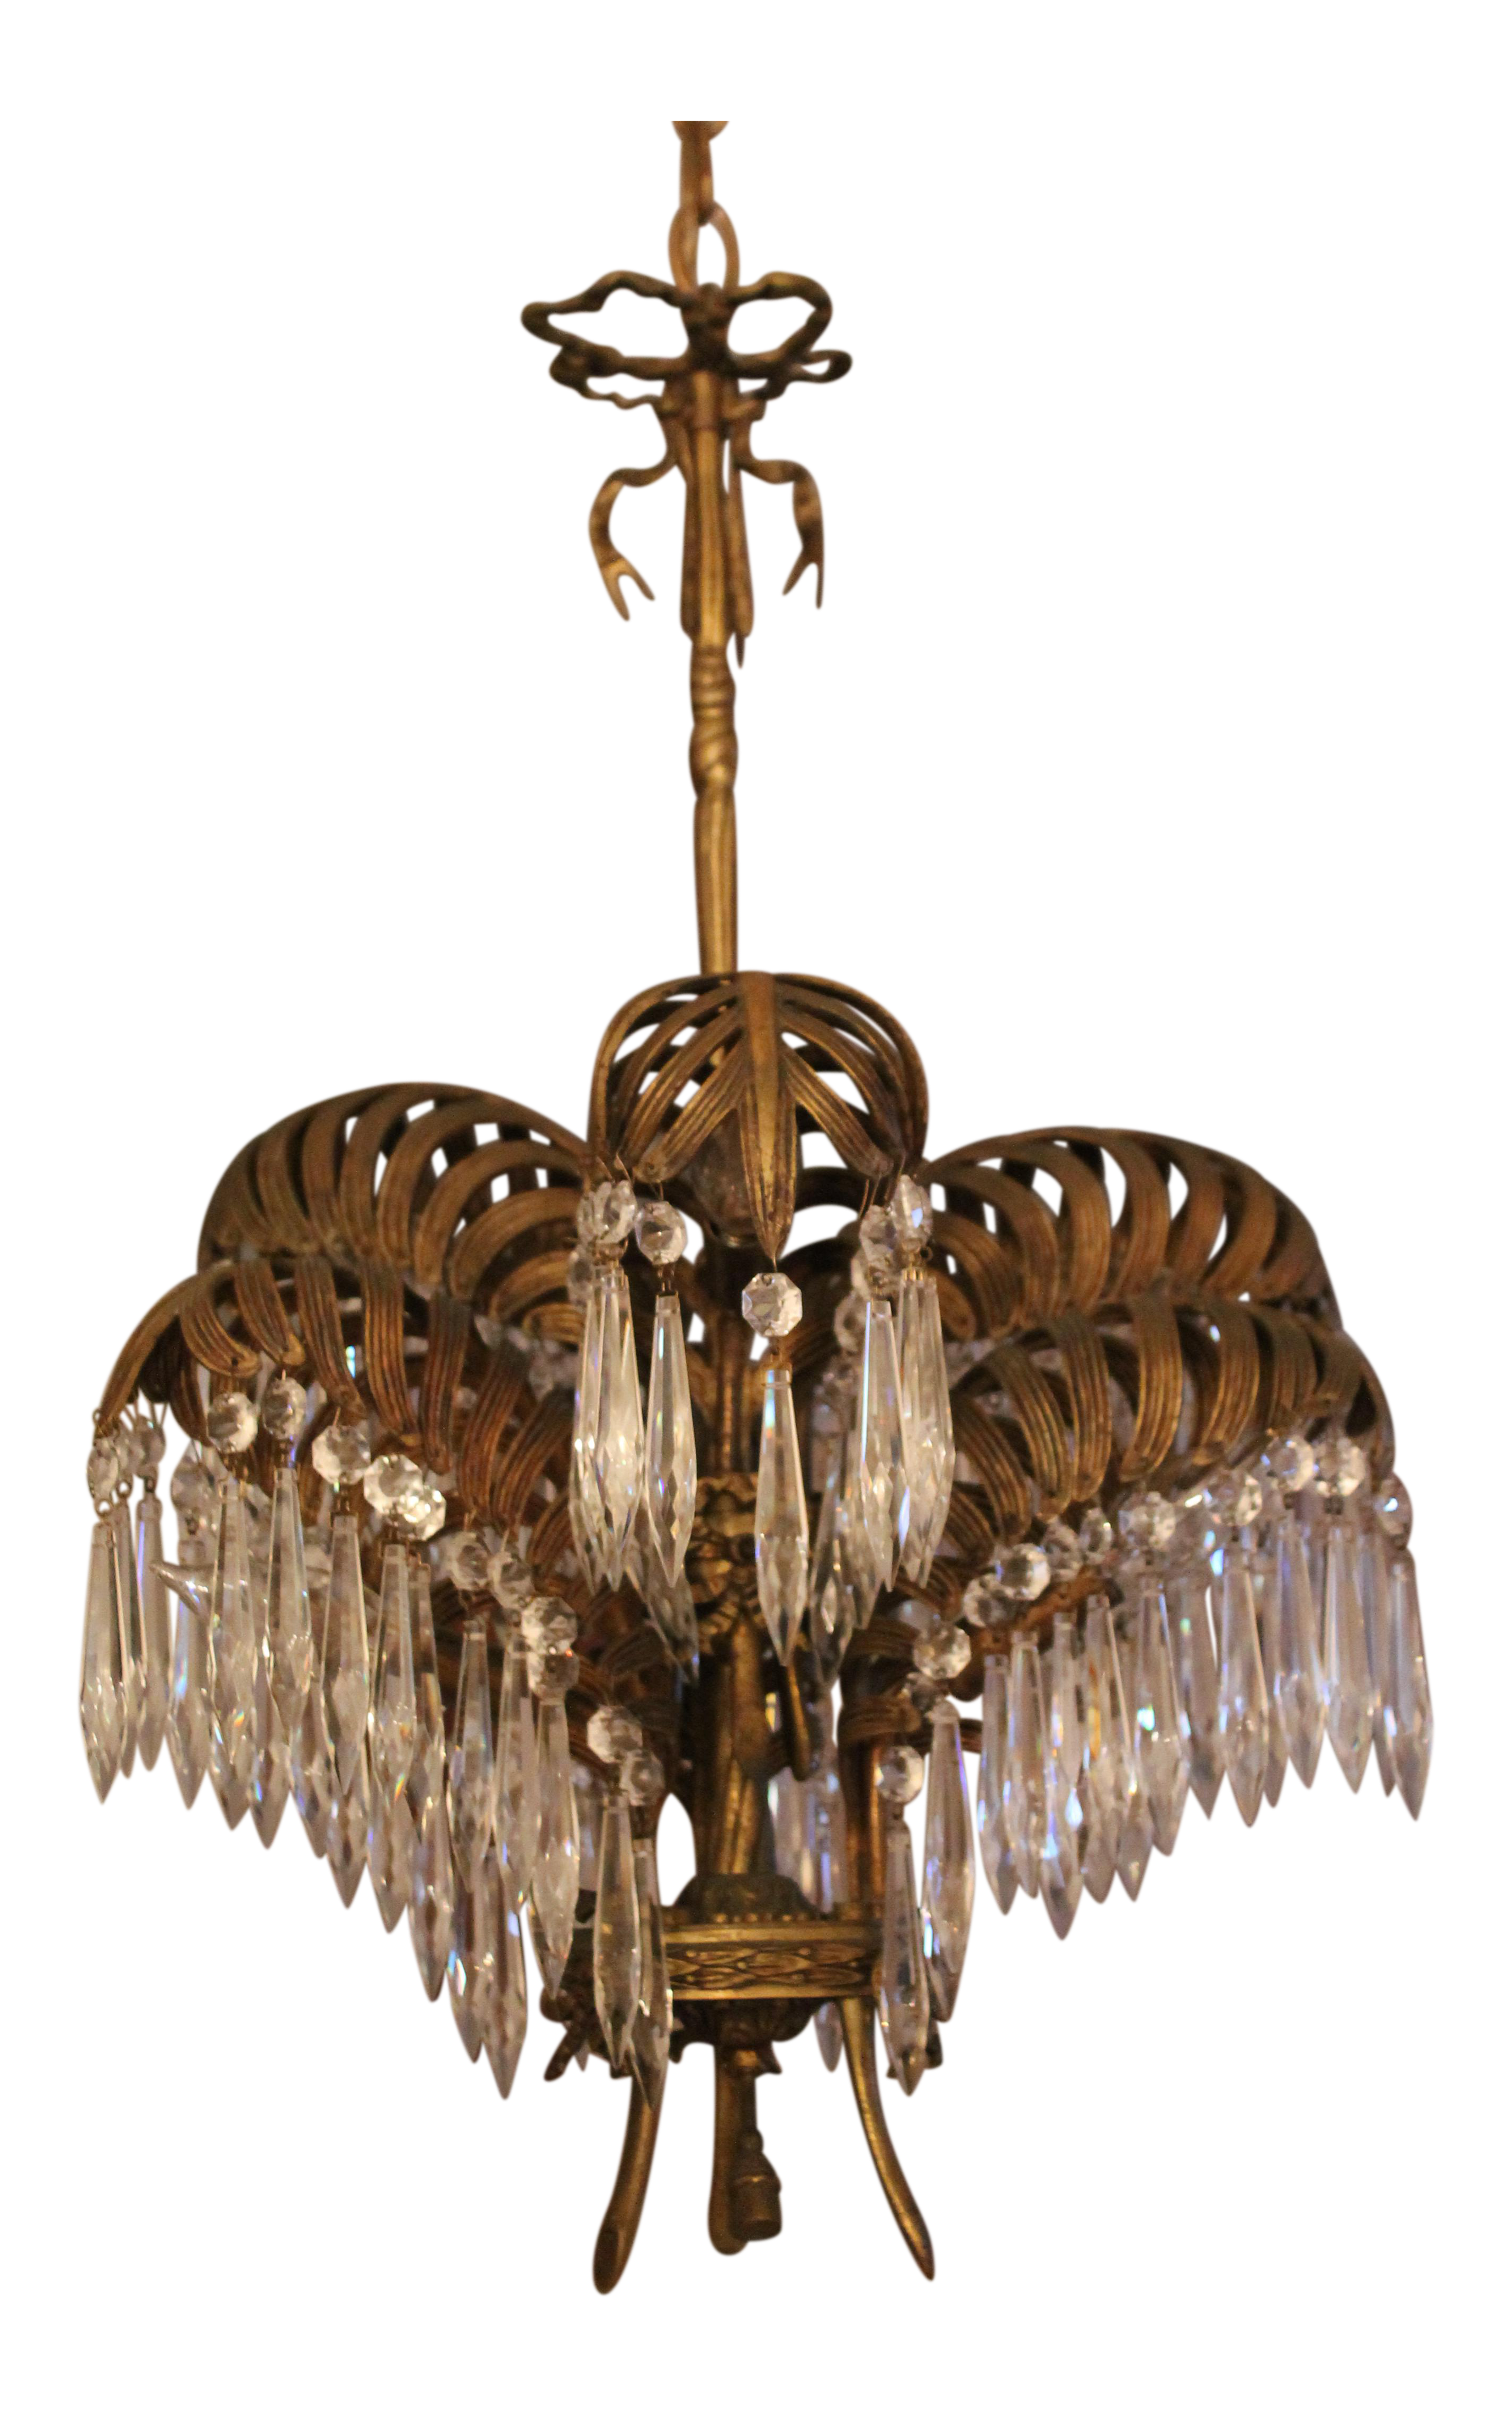 elk how art of with nouveau bedroom deco sale sconces large tree light design an for lighting wood retro wine full s antique faux clean bottle french crystals chandelier and size vintage paper theresa crystal reproduction style maria restoration to wall branch reproductions antler chandeliers